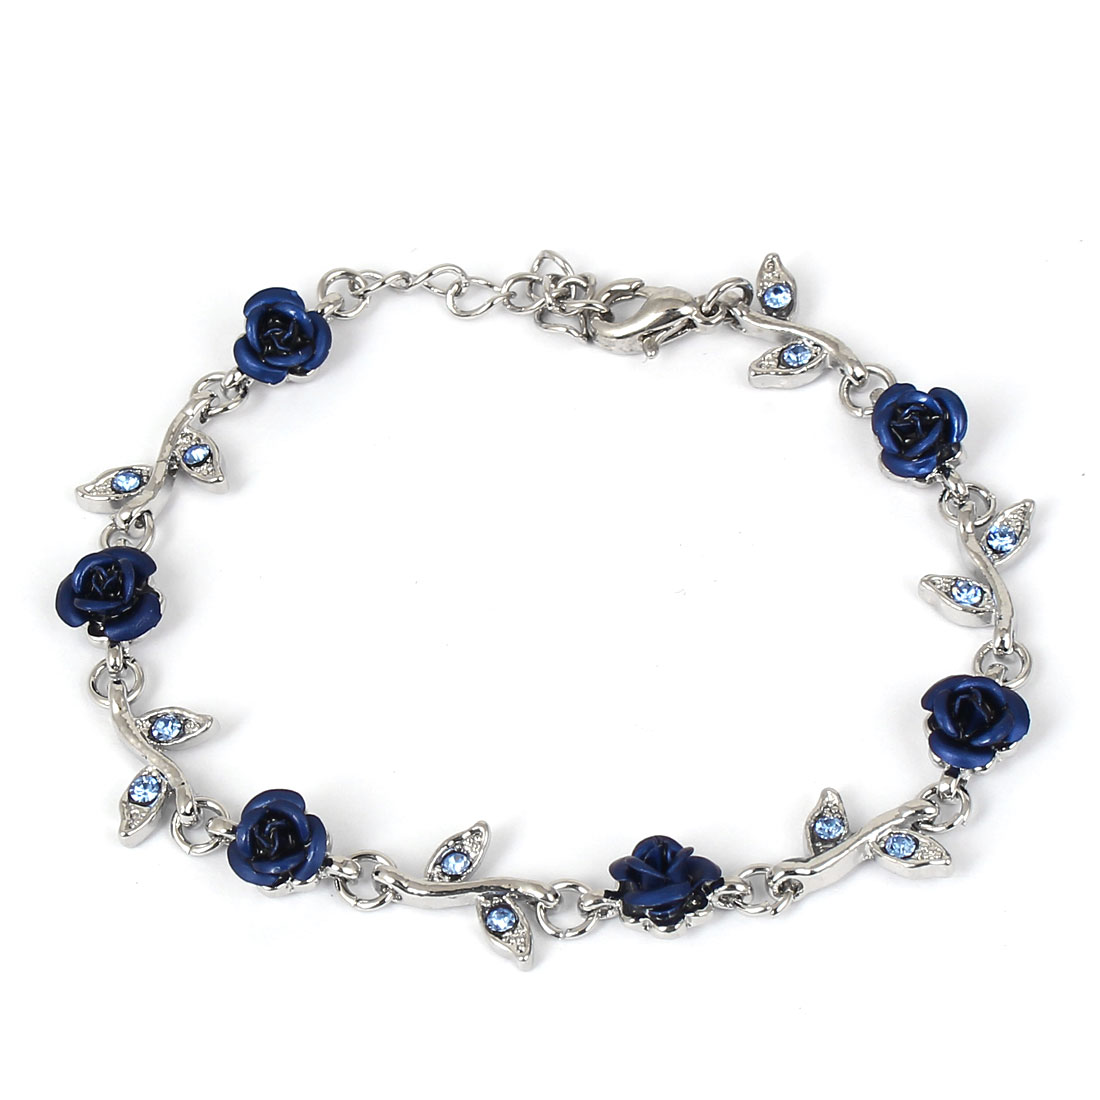 Lady Fashion Jewelry Rose Flower Crystal Decor Bracelet Silver Tone Dark Blue